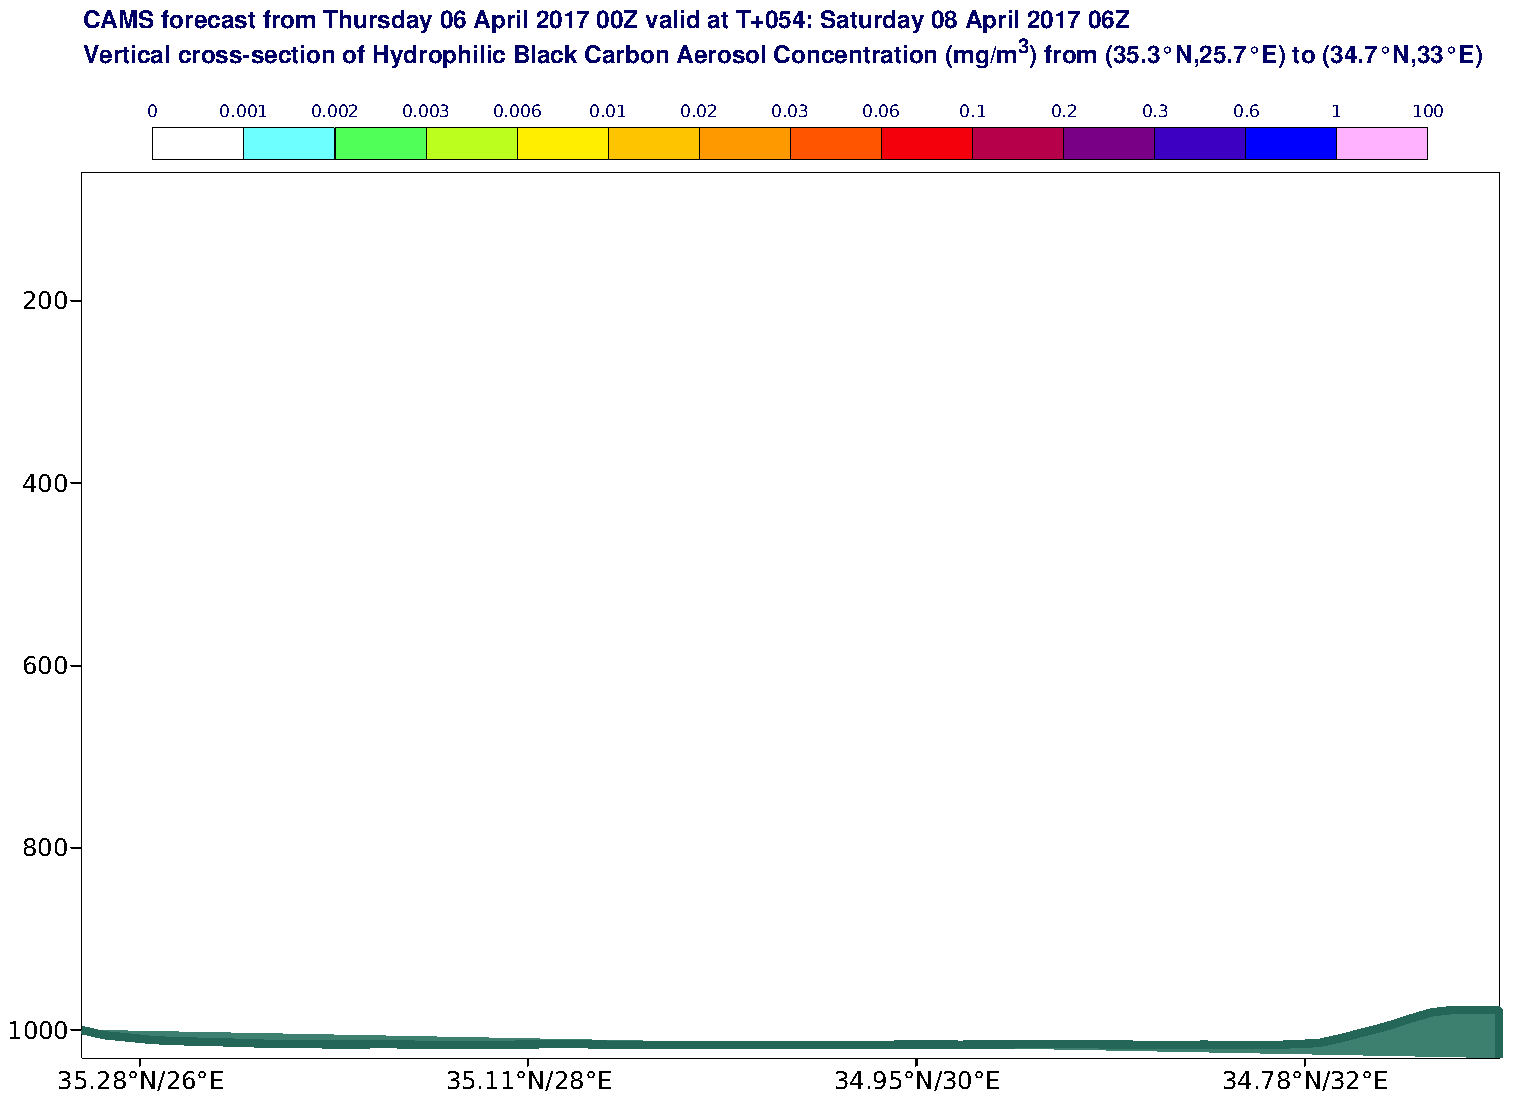 Vertical cross-section of Hydrophilic Black Carbon Aerosol Concentration (mg/m3) valid at T54 - 2017-04-08 06:00